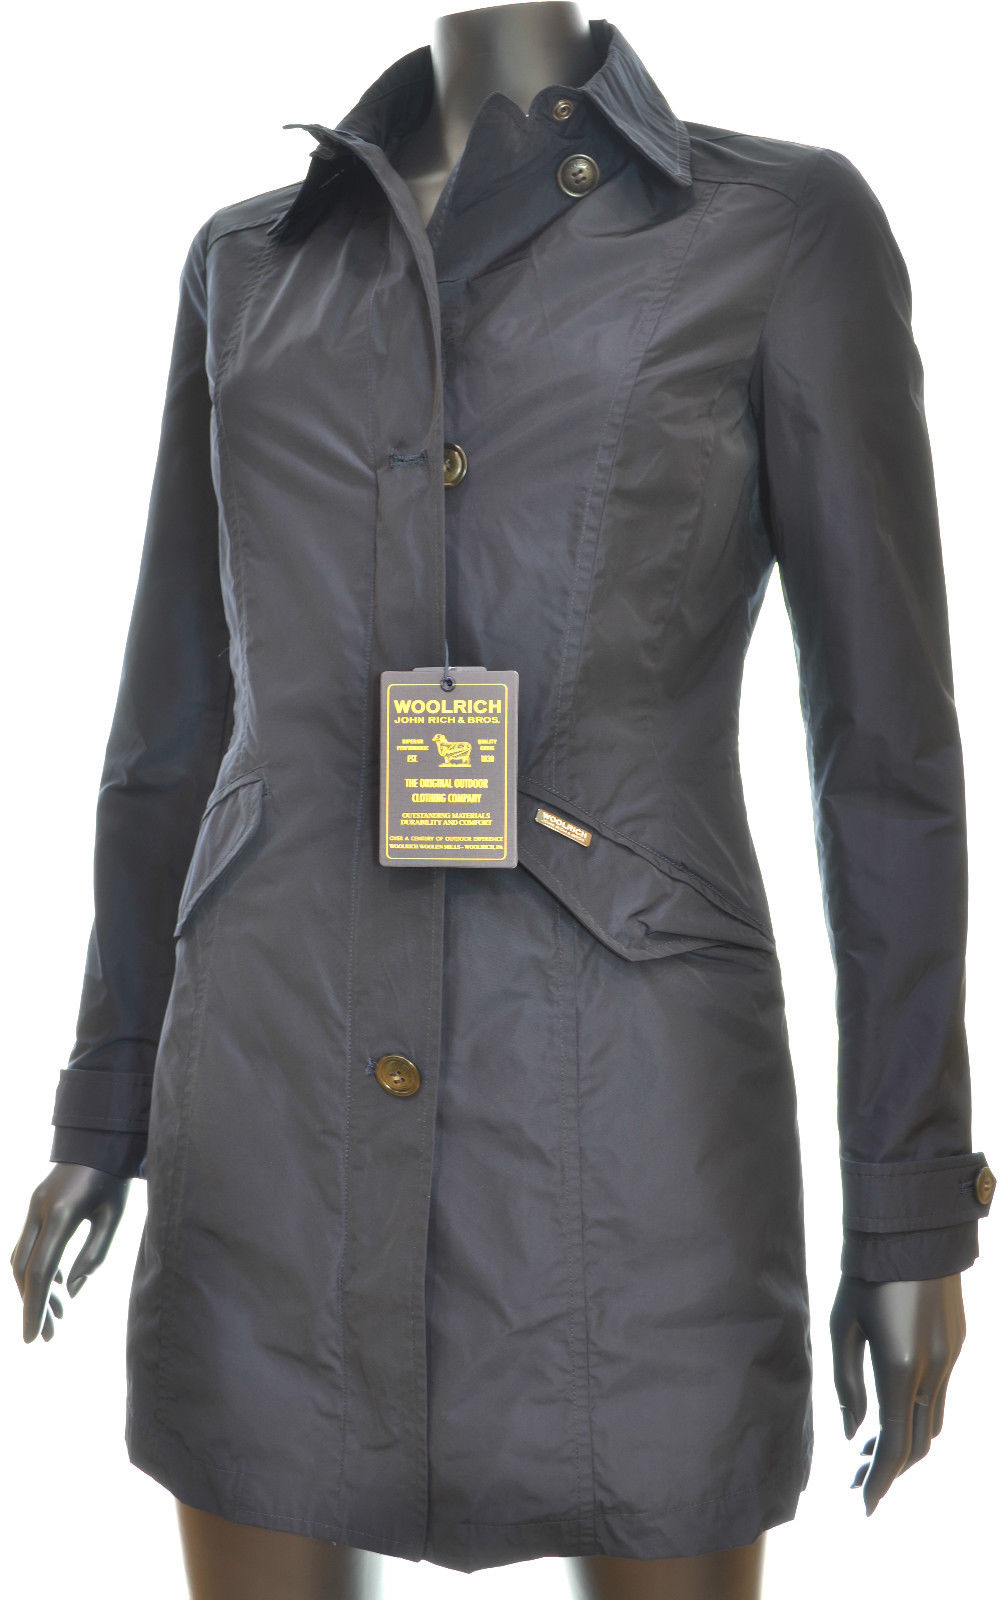 cheap for discount 3755f 8d82d WOOLRICH W'S TRAVEL COAT TG. XL COL. BLU GIACCA IMPERMEABILE DONNA wwcps2336